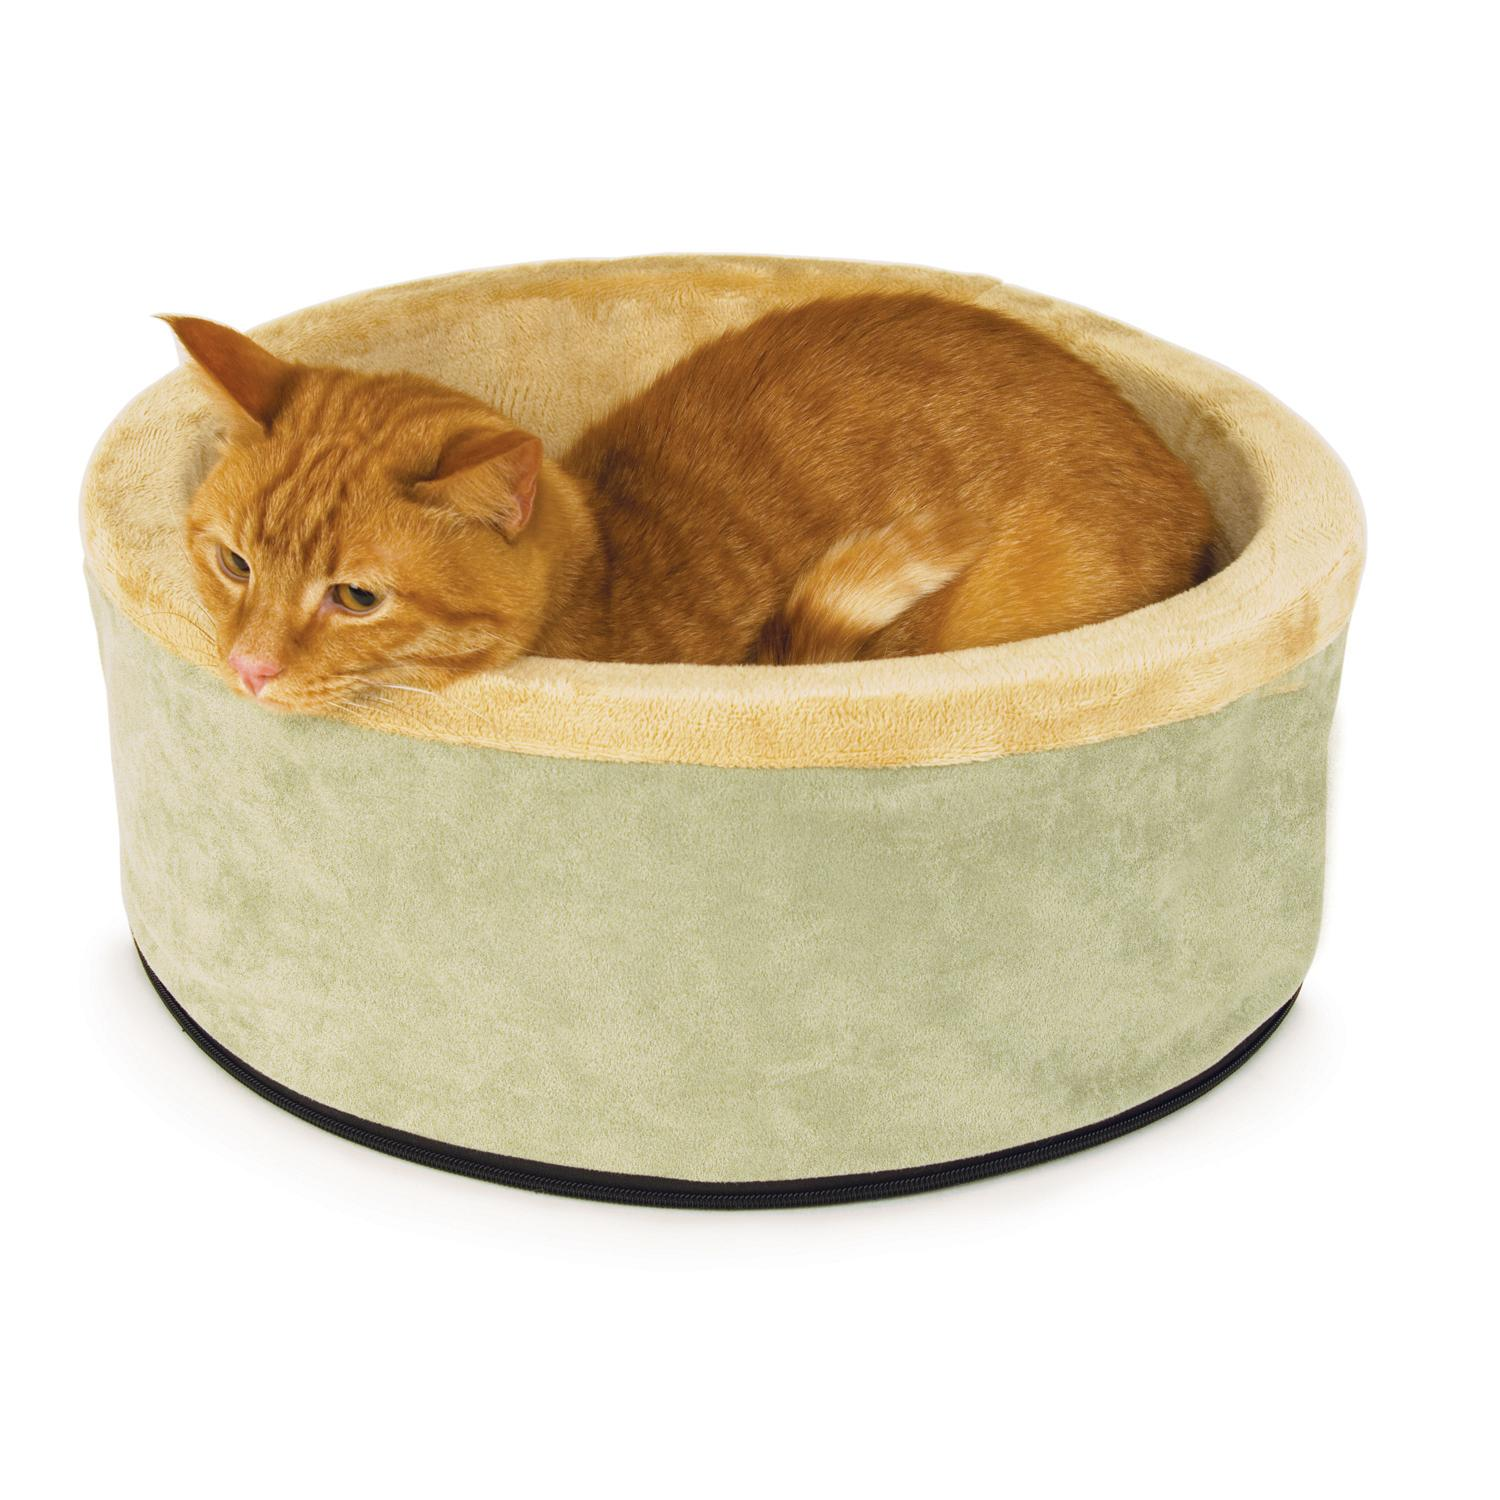 K H Thermo Kitty Heated Cat Bed Review